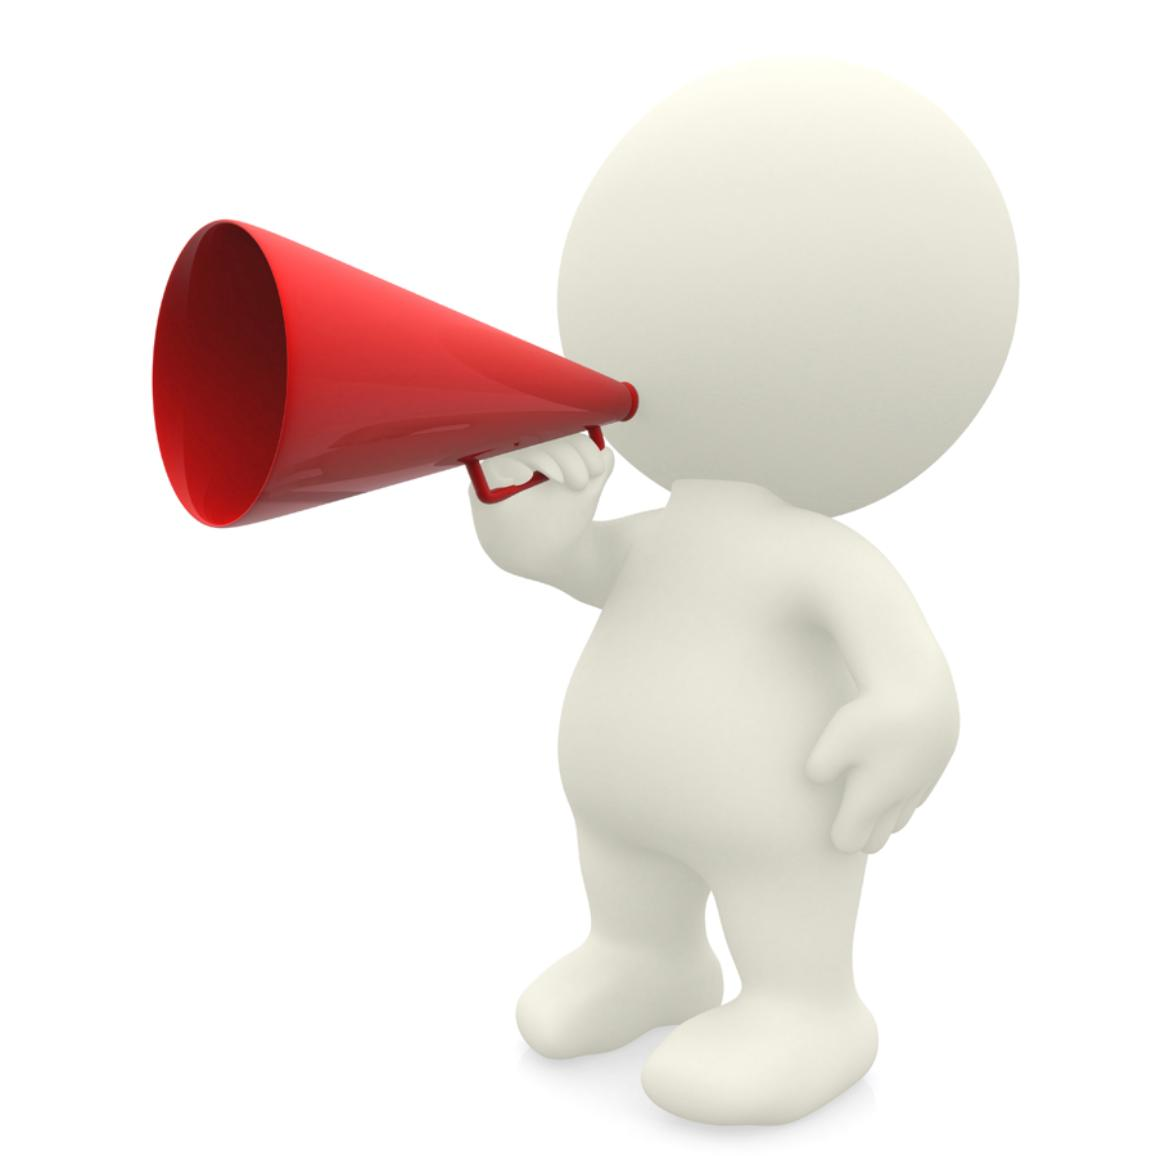 Illustration photo of a person with a megaphone © BELGA_MONKEY